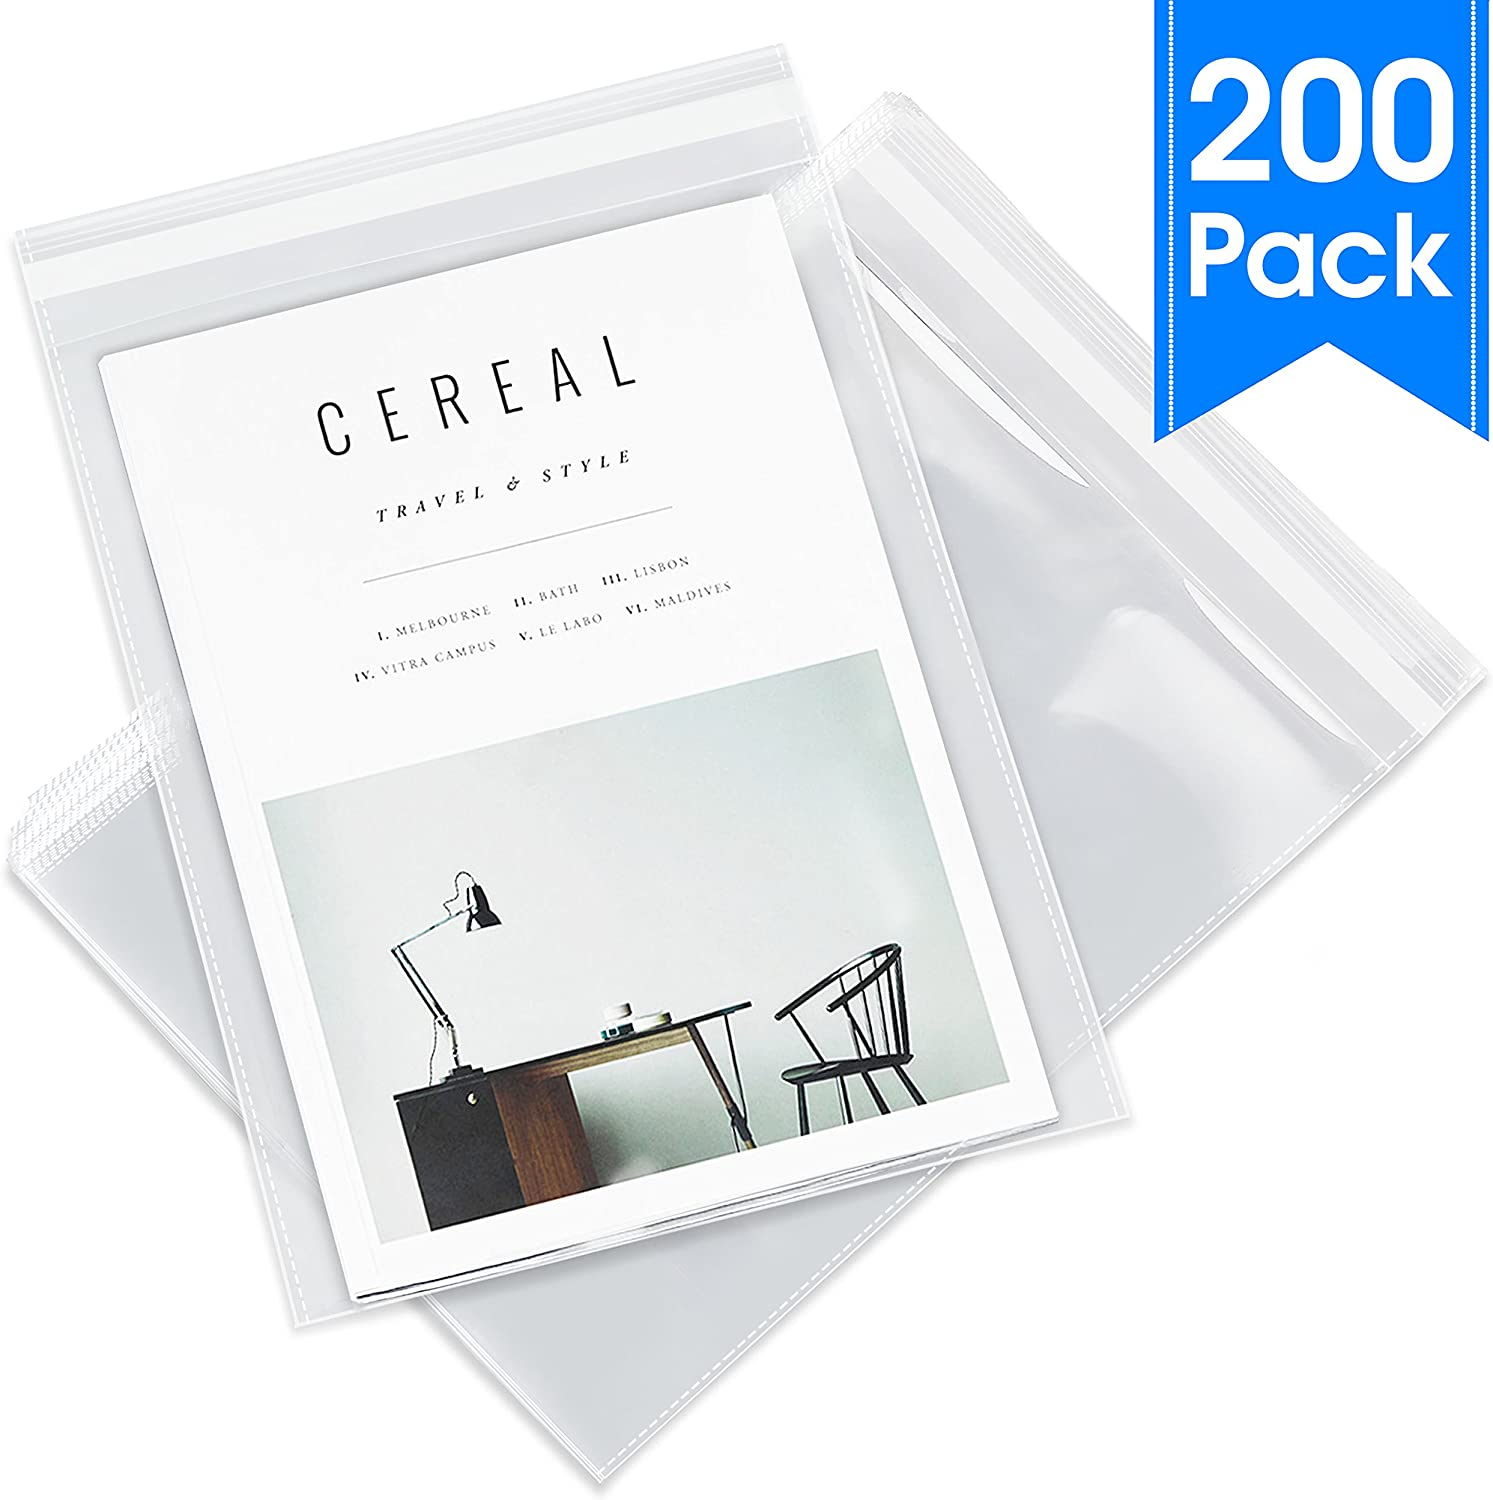 "Pack It Chic - 9"" X 12"" (200 Pack) Clear Resealable Cellophane Cello Bags - Fits A4, Letter Sized Documents, Marketing Materials - Self Seal (More Sizes Available)"